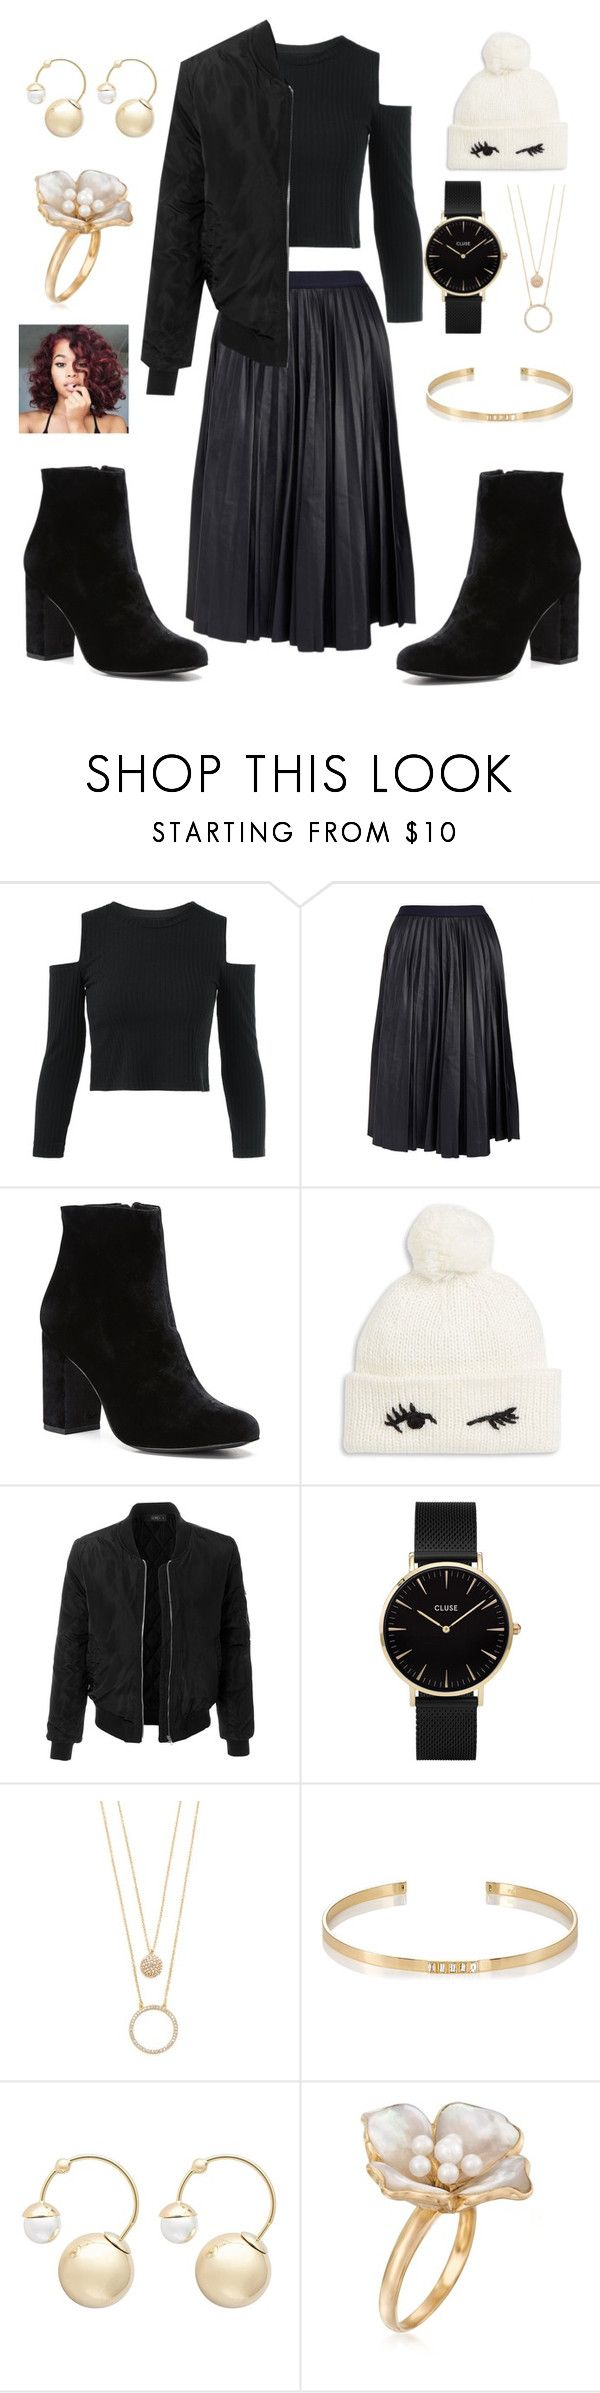 """""""Pleated Leather Skirt"""" by gryffindor-designer ❤ liked on Polyvore featuring Theory, Witchery, Kate Spade, LE3NO, CLUSE, Ileana Makri and Ross-Simons"""